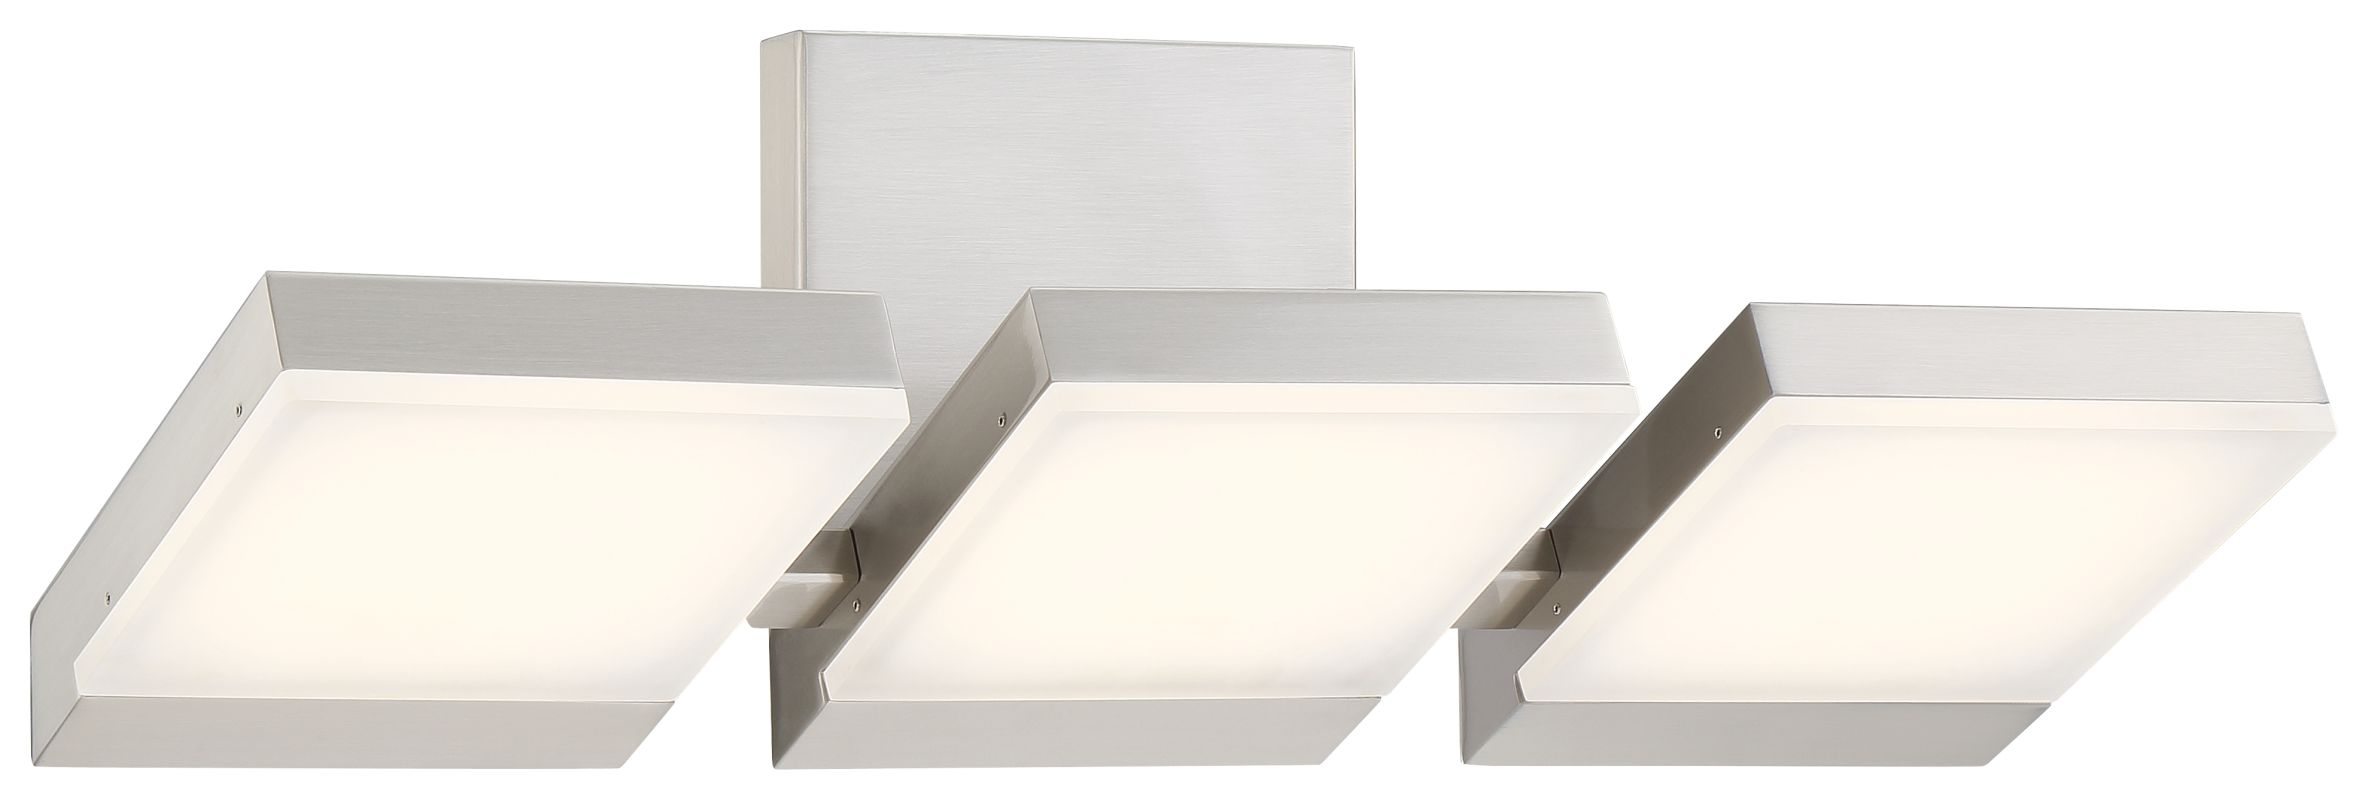 Kovacs P1253-084-L LED Bathroom Vanity Light from the Angle Collection